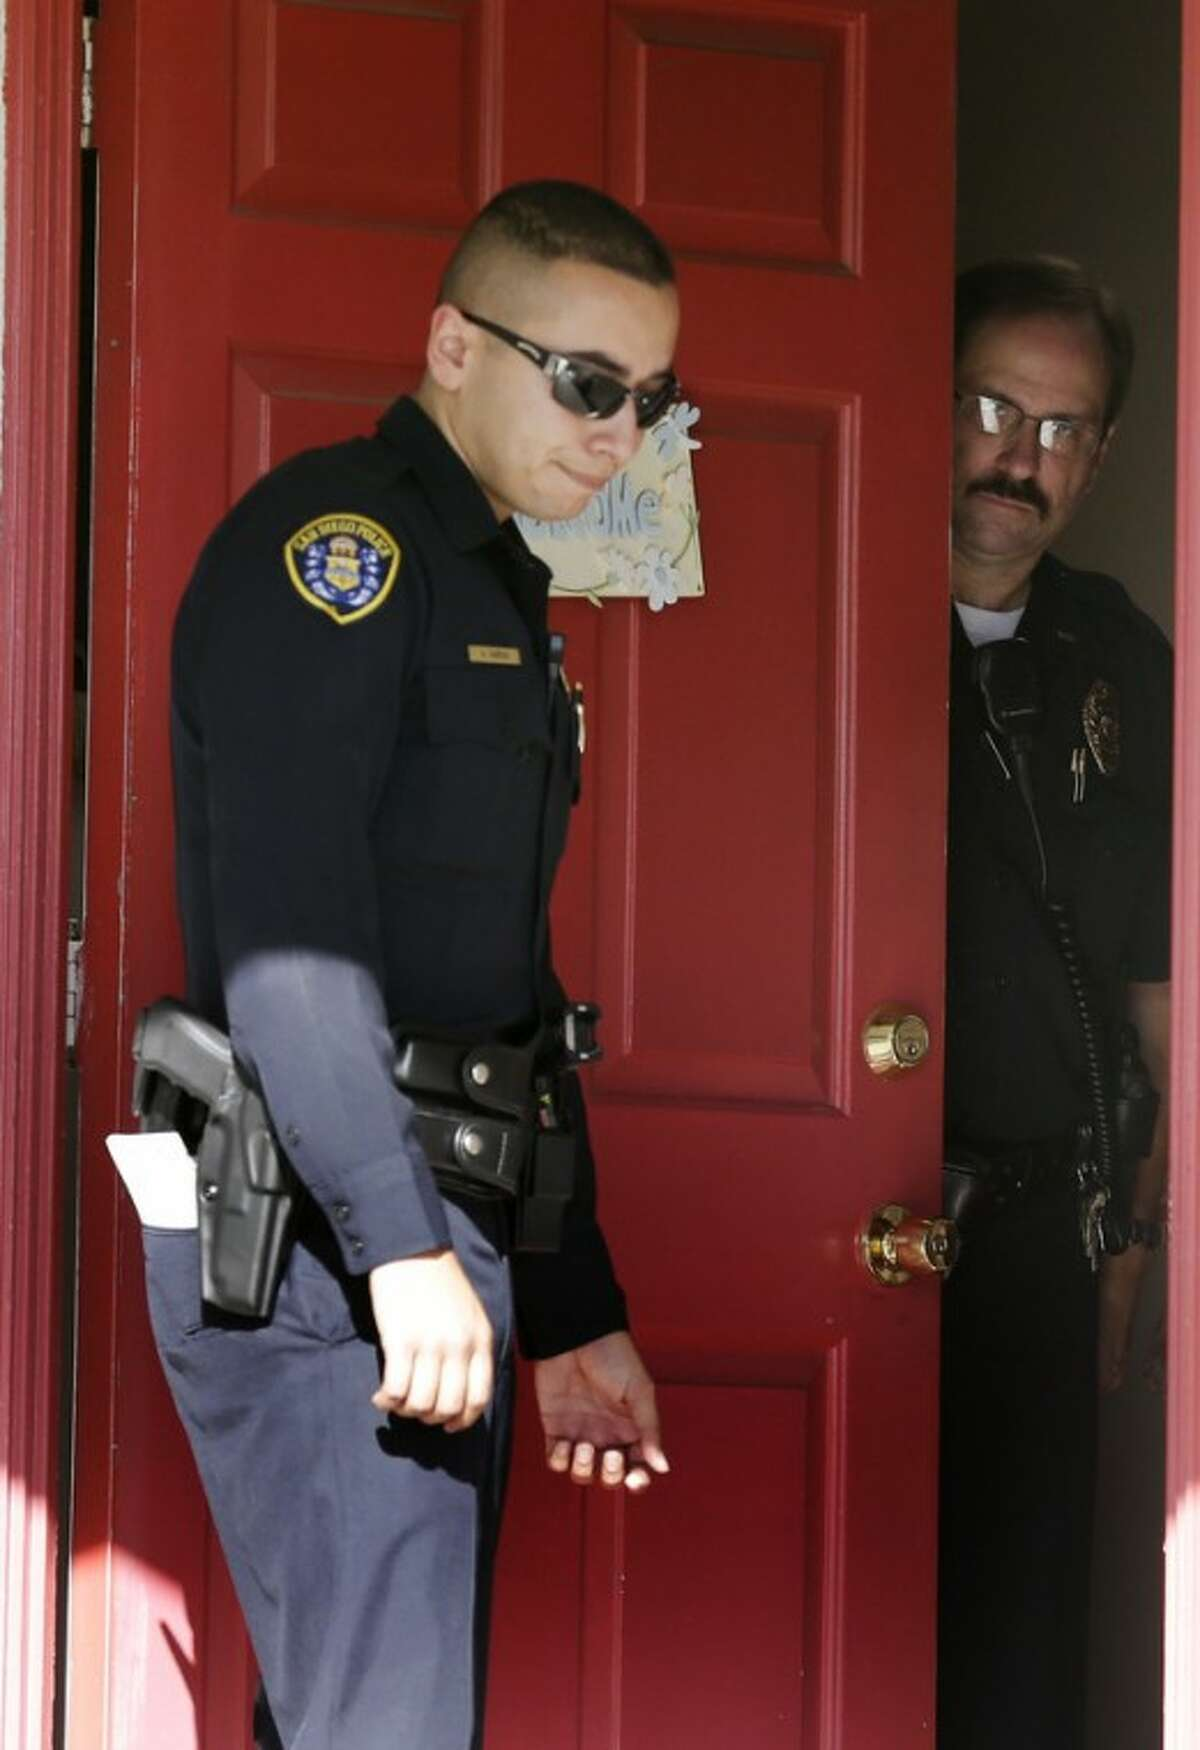 San Diego police officers stand in the doorway of the home of the mother of Colorado shooting suspect James Holmes Friday, July 20, 2012, in San Diego. A gunman in a gas mask barged into a crowded Denver-area theater during a midnight showing of the Batman movie on Friday, hurled a gas canister and then opened fire in one of the deadliest mass shootings in recent U.S. history. (AP Photo/Gregory Bull)